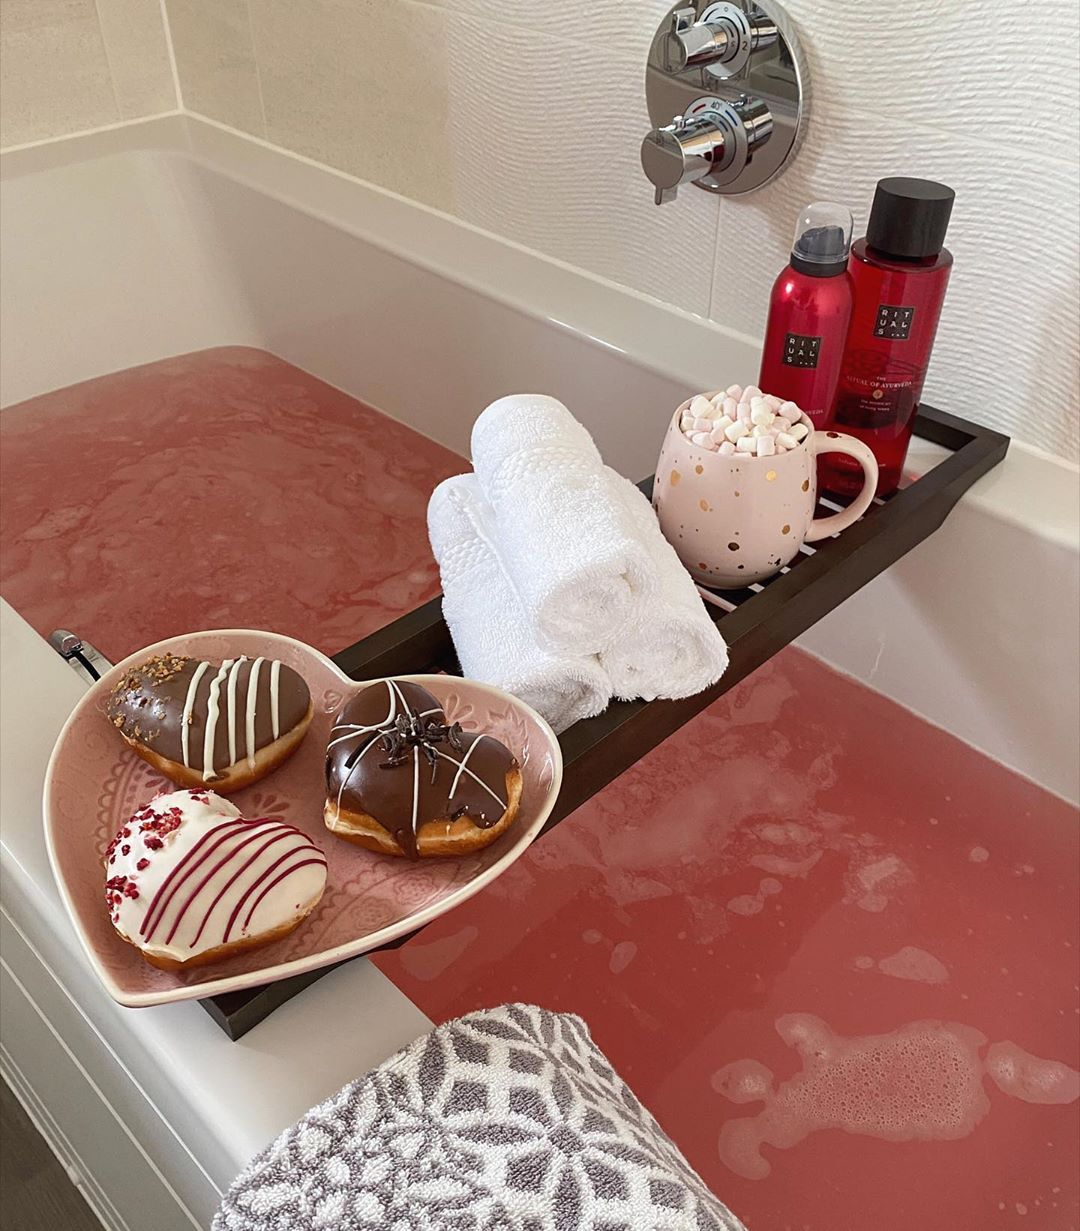 Happy Saturday I M Starting My Day With A Relaxing Bath I Hope You All Have A Lovely Day In 2020 Relaxing Bath Bath Bath Caddy